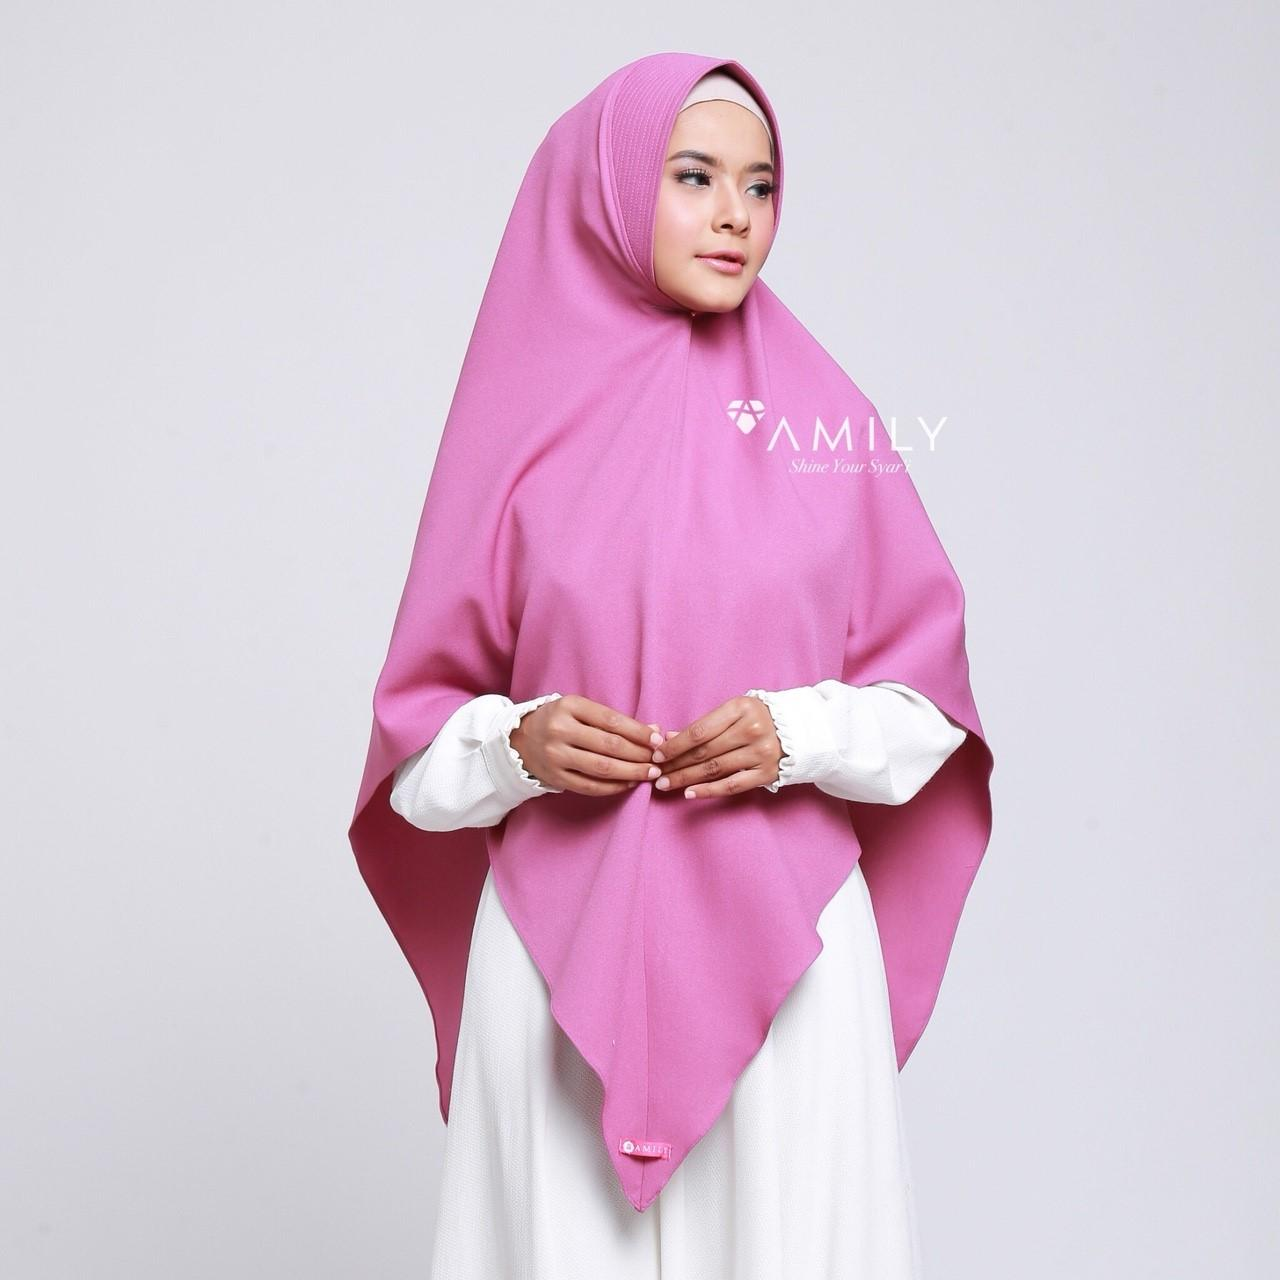 Buy Sell Cheapest Luna Bazaar Cyra Best Quality Product Deals Clarette Wedges Brown Khimar Amily Hijab